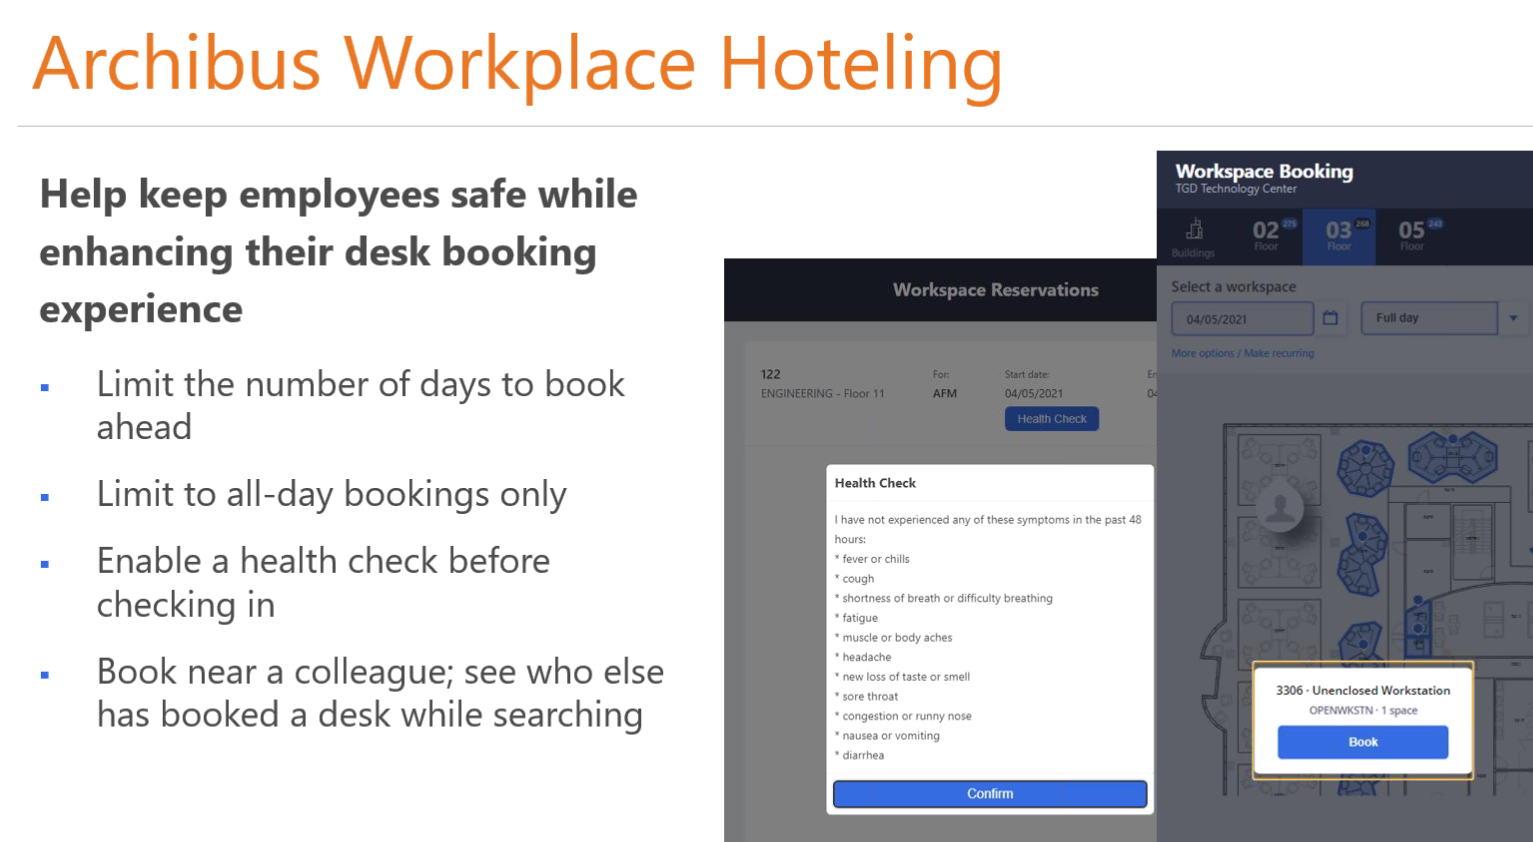 Machine generated alternative text: Archibus Workplace Hoteling  Help keep employees safe while  enhancing their desk booking  Workspace Reservations  experience  Limit the number of days to book  ahead  Limit to all-day bookings only  Enable a health check before  checking in  Book near a colleague; see who else  has booked a desk while searching  Workspace Booking  TGD Technoiogy Center  Select a workspace  04/05/2021  05 •a  Fun day  ENGINEERING - Floor 11  Health Check  Start d ate  04/05/2021  Check  have not experienced any Of these symptoms in the past 48  hours:  • fever or chills  • cough  • shortness of breath or difficulty breathing  • fatigue  • muscle or body aches  • headache  • new loss Of taste or smell  • sore throat  • congestion or runny nose  • nausea or vomiting  • diarrhea  • Unenclosed Workstation  • 1 space